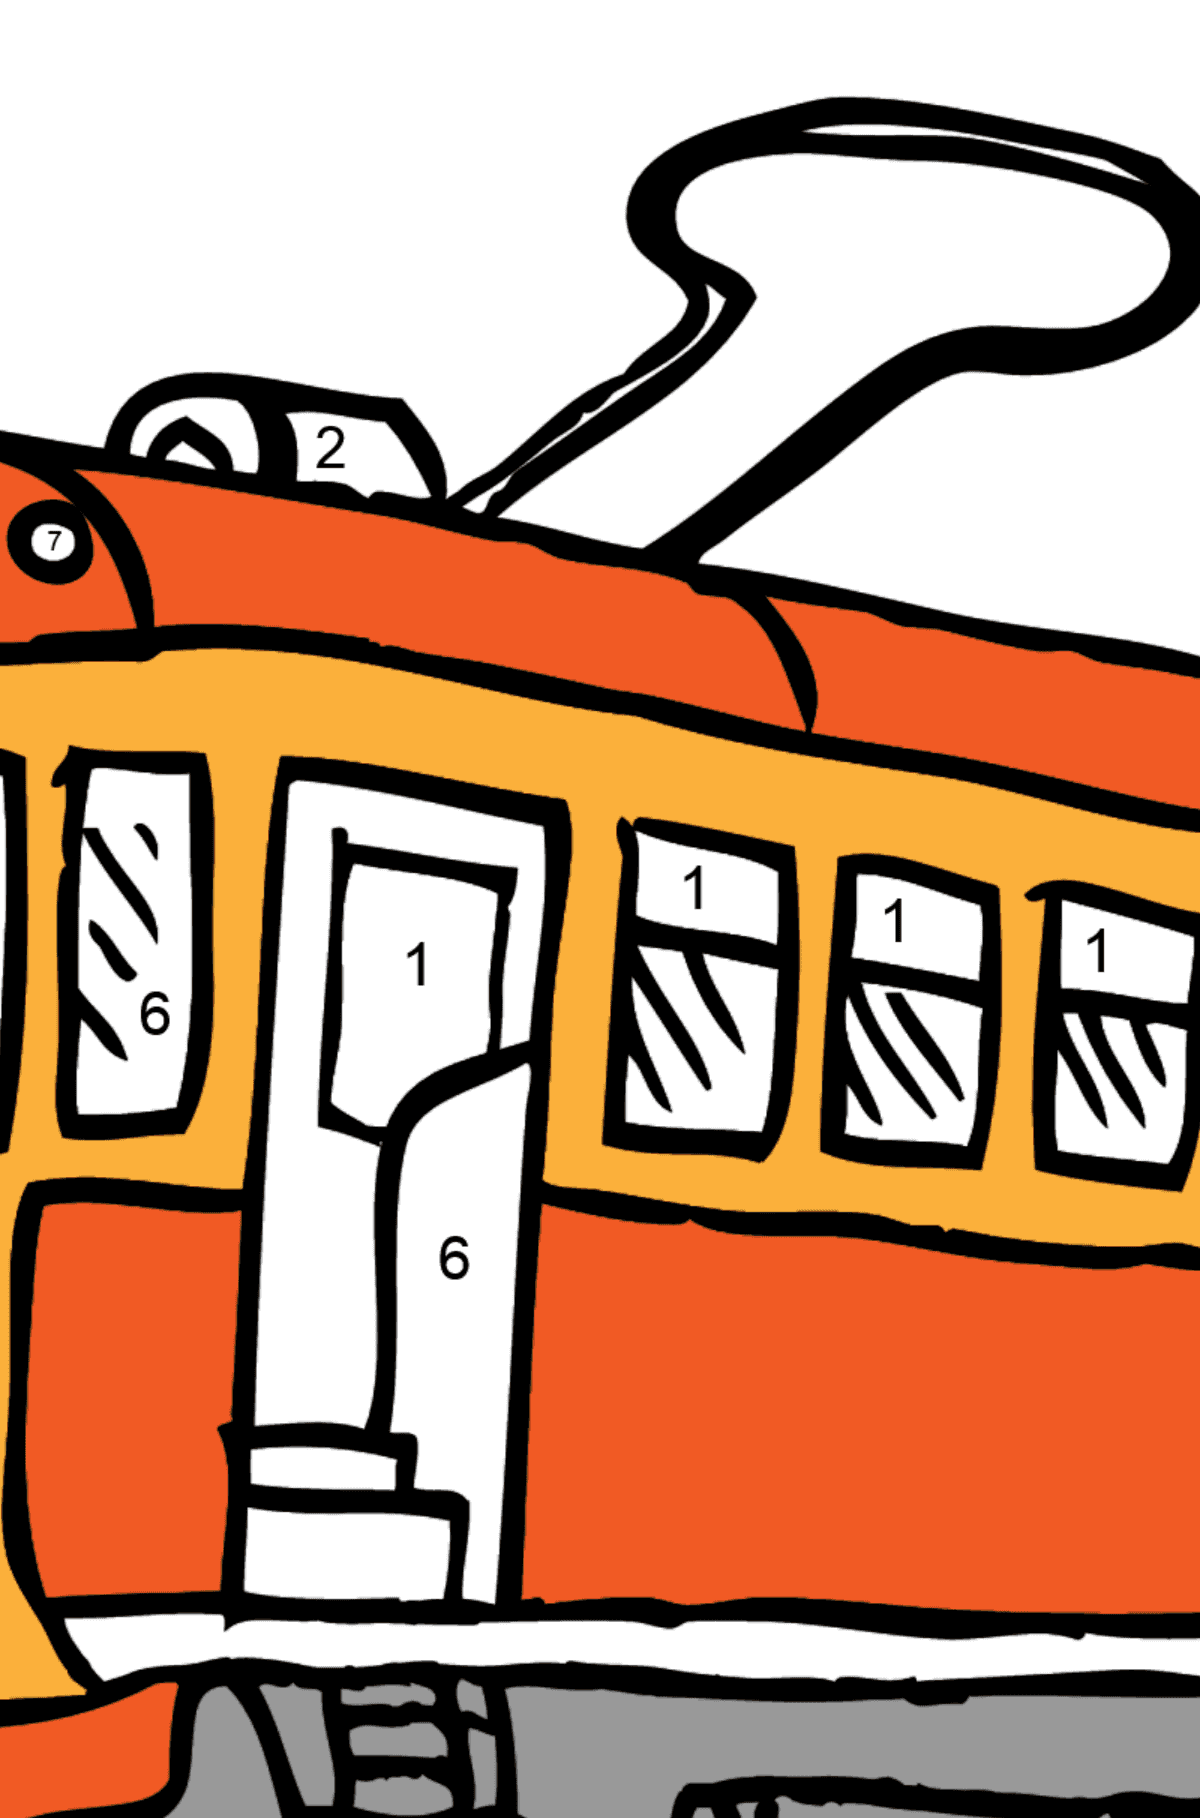 Simple Coloring Page - A Tram is Bored - Coloring by Numbers for Kids